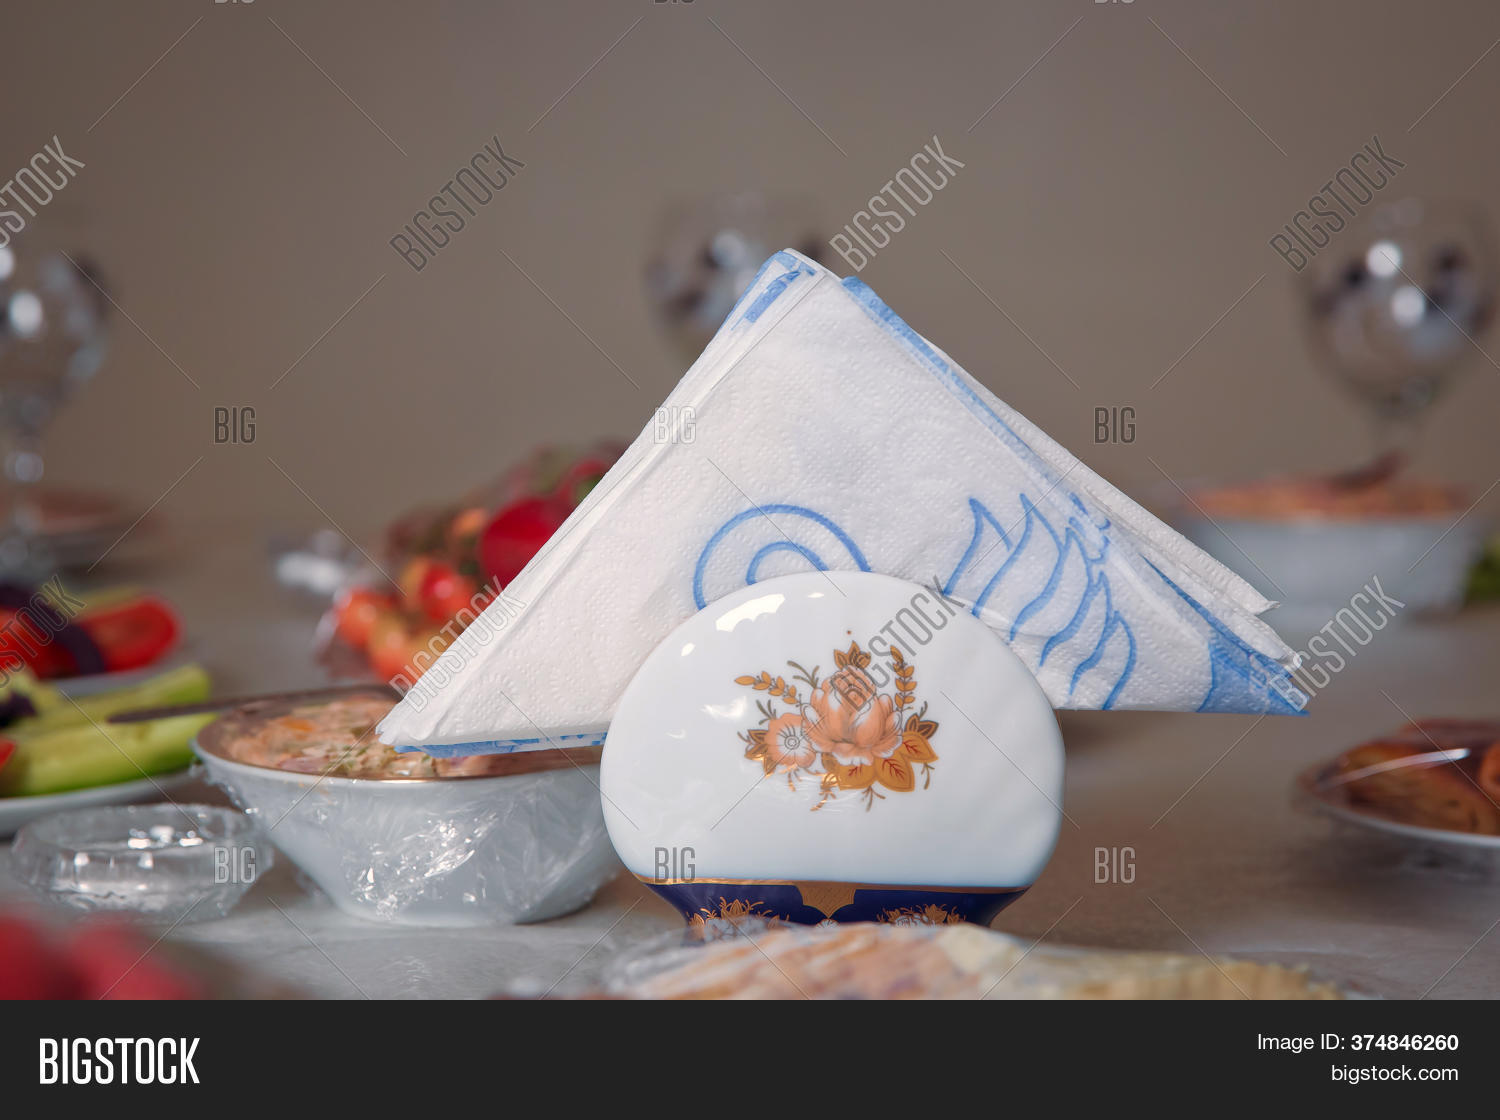 Table Cafe Restaurant Image Photo Free Trial Bigstock